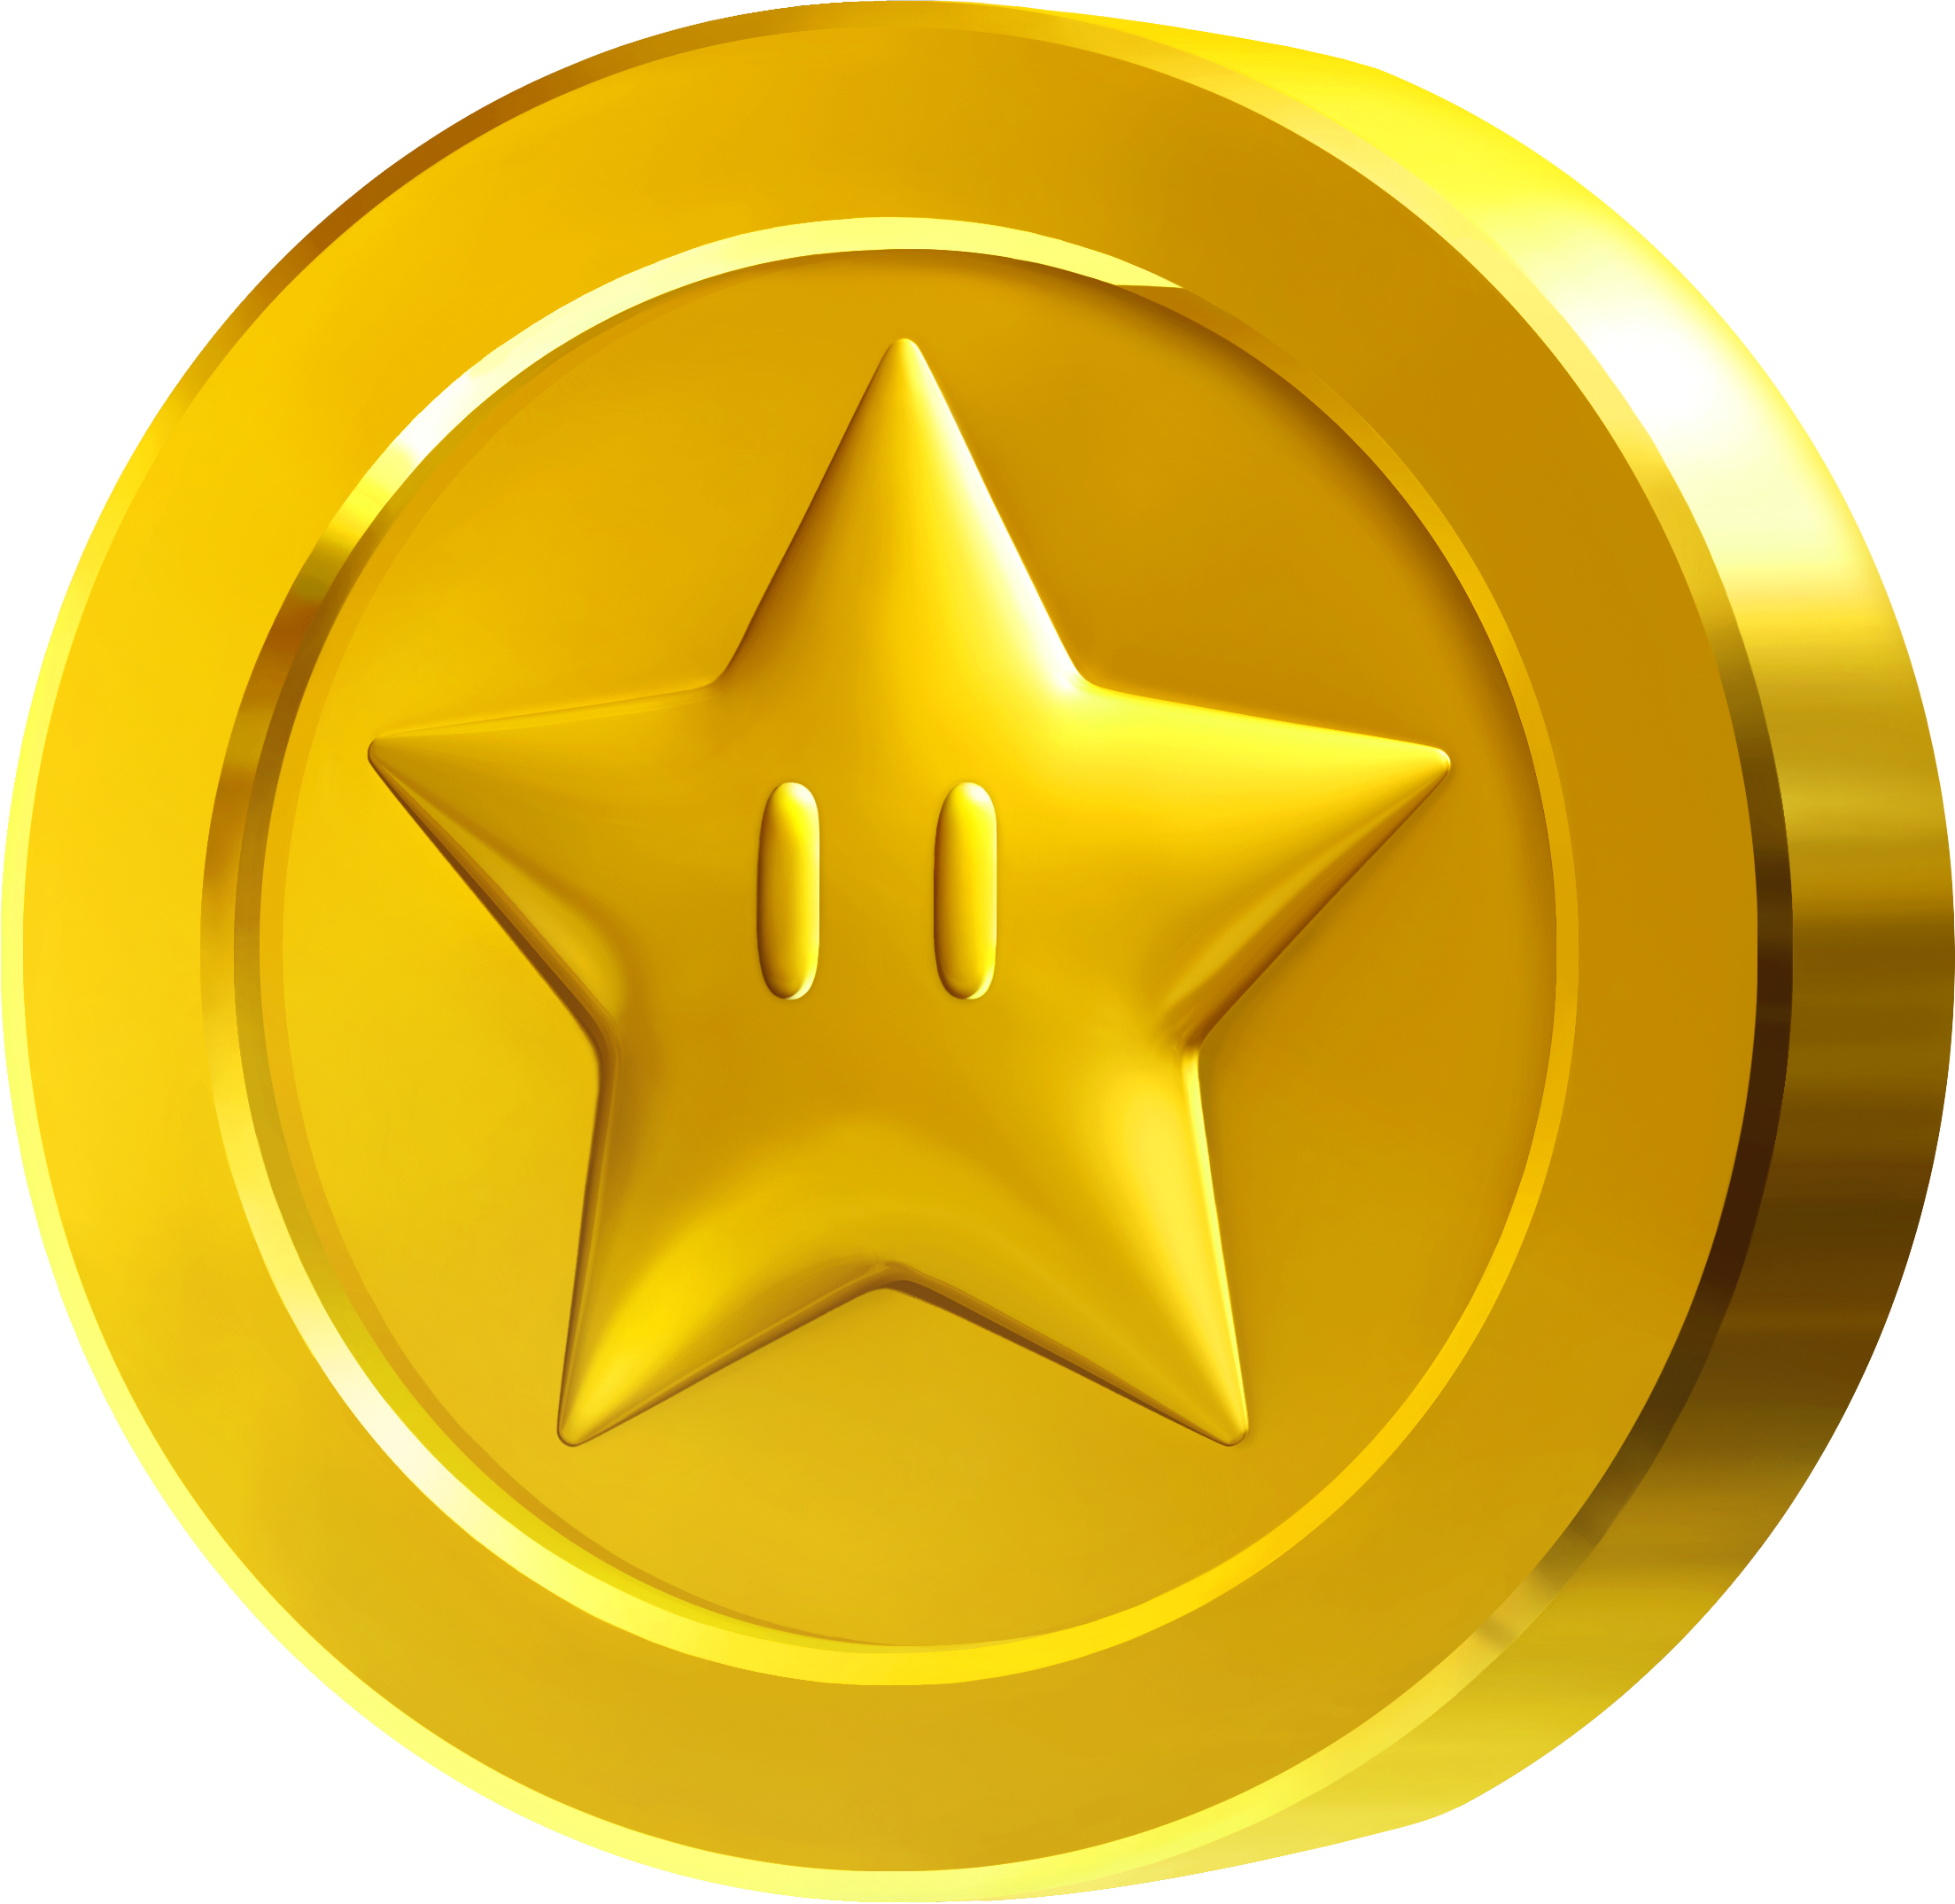 Drawing gold coin. Google game ui icon